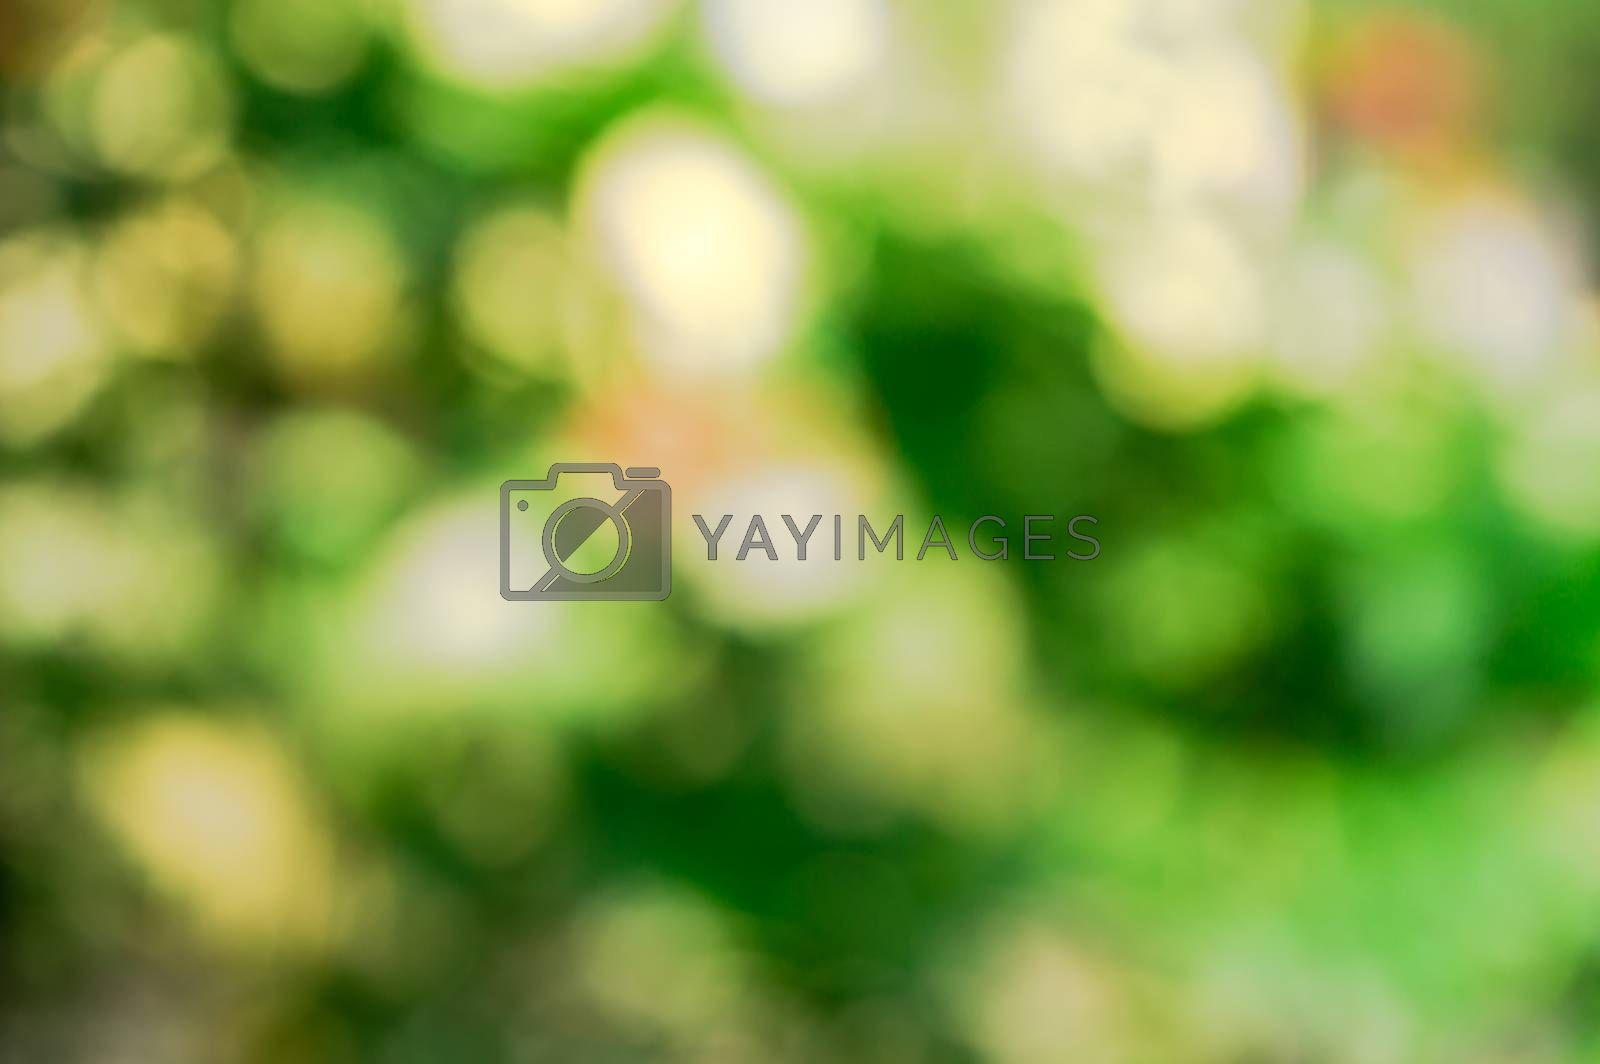 Shiny highlights of Sunlight shines through Out of focus Green leaves create a beautiful bokeh composition. Nature Background image. Cpoy Space room for black color text on green background.